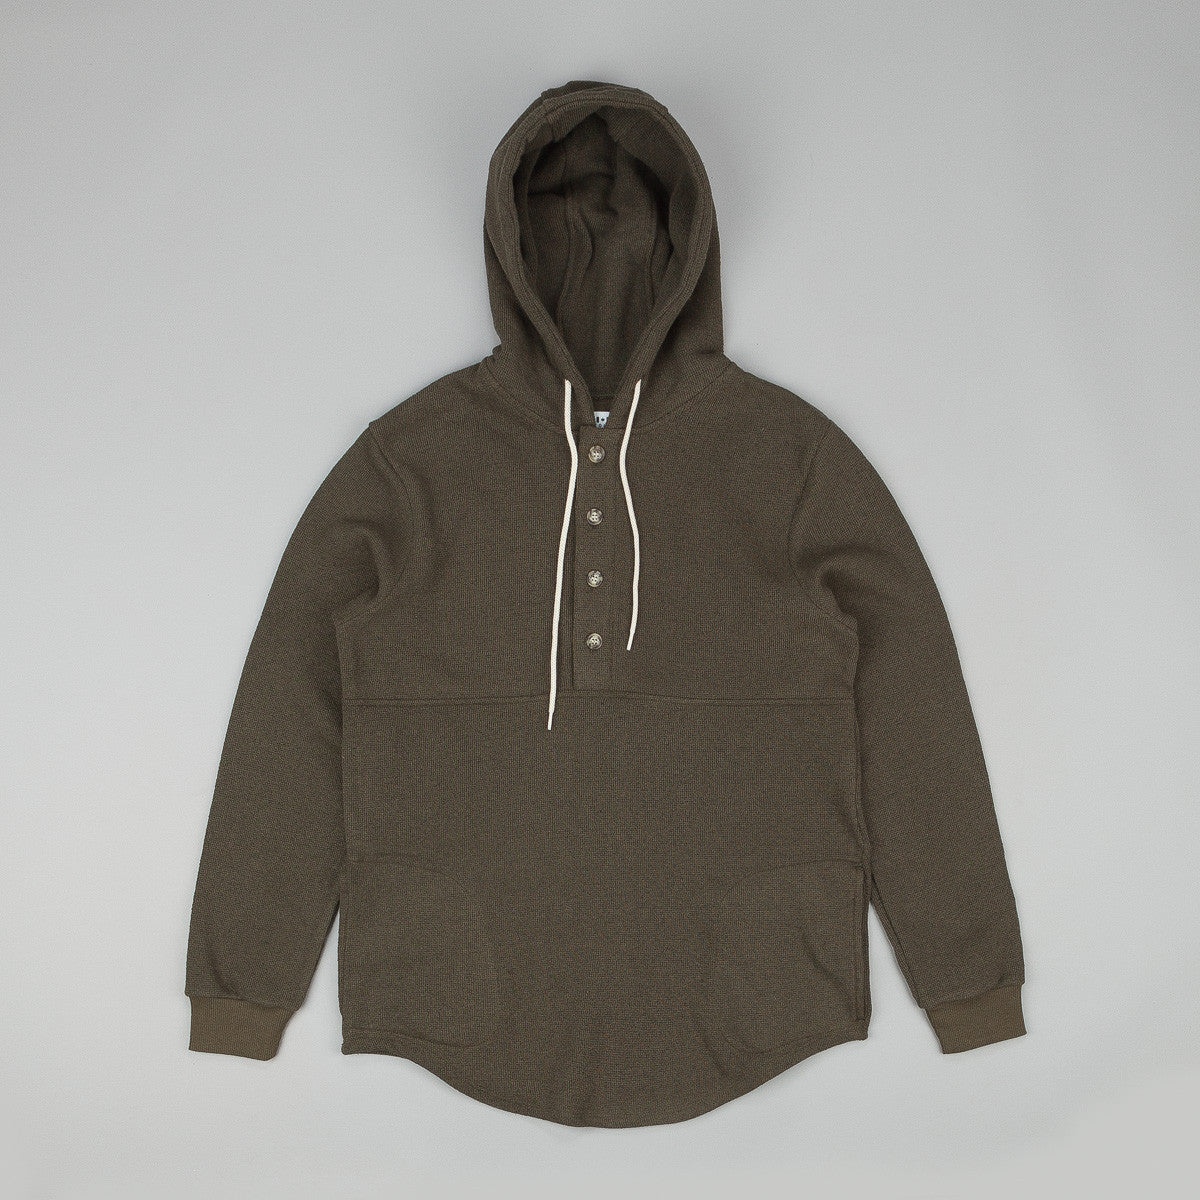 Muttonhead Thermal Camping Hooded Sweatshirt